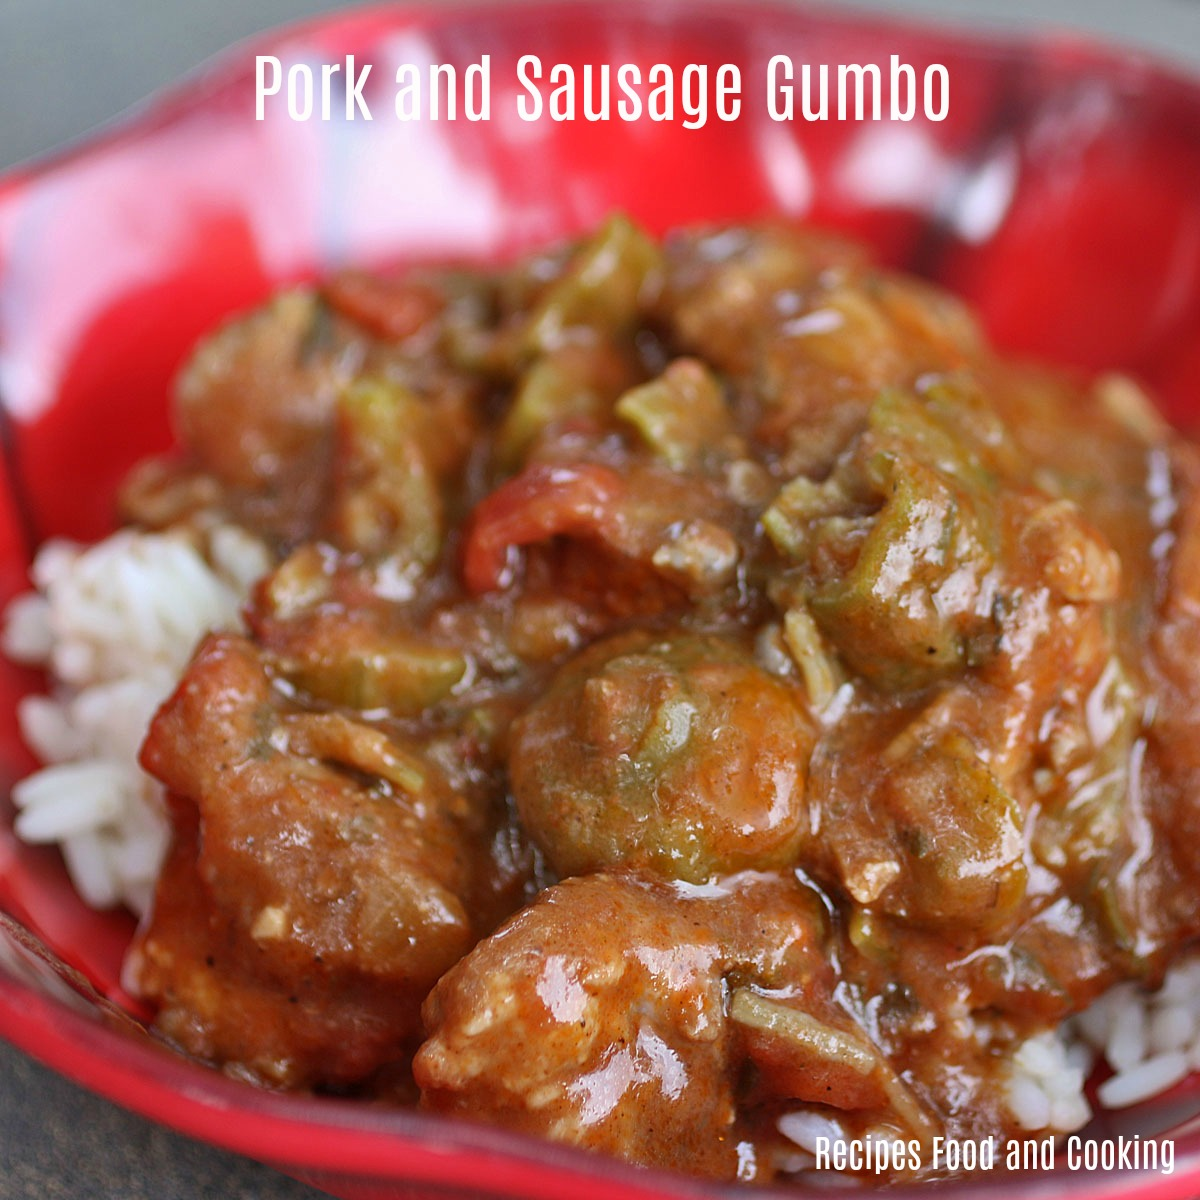 Pork and Sausage Gumbo